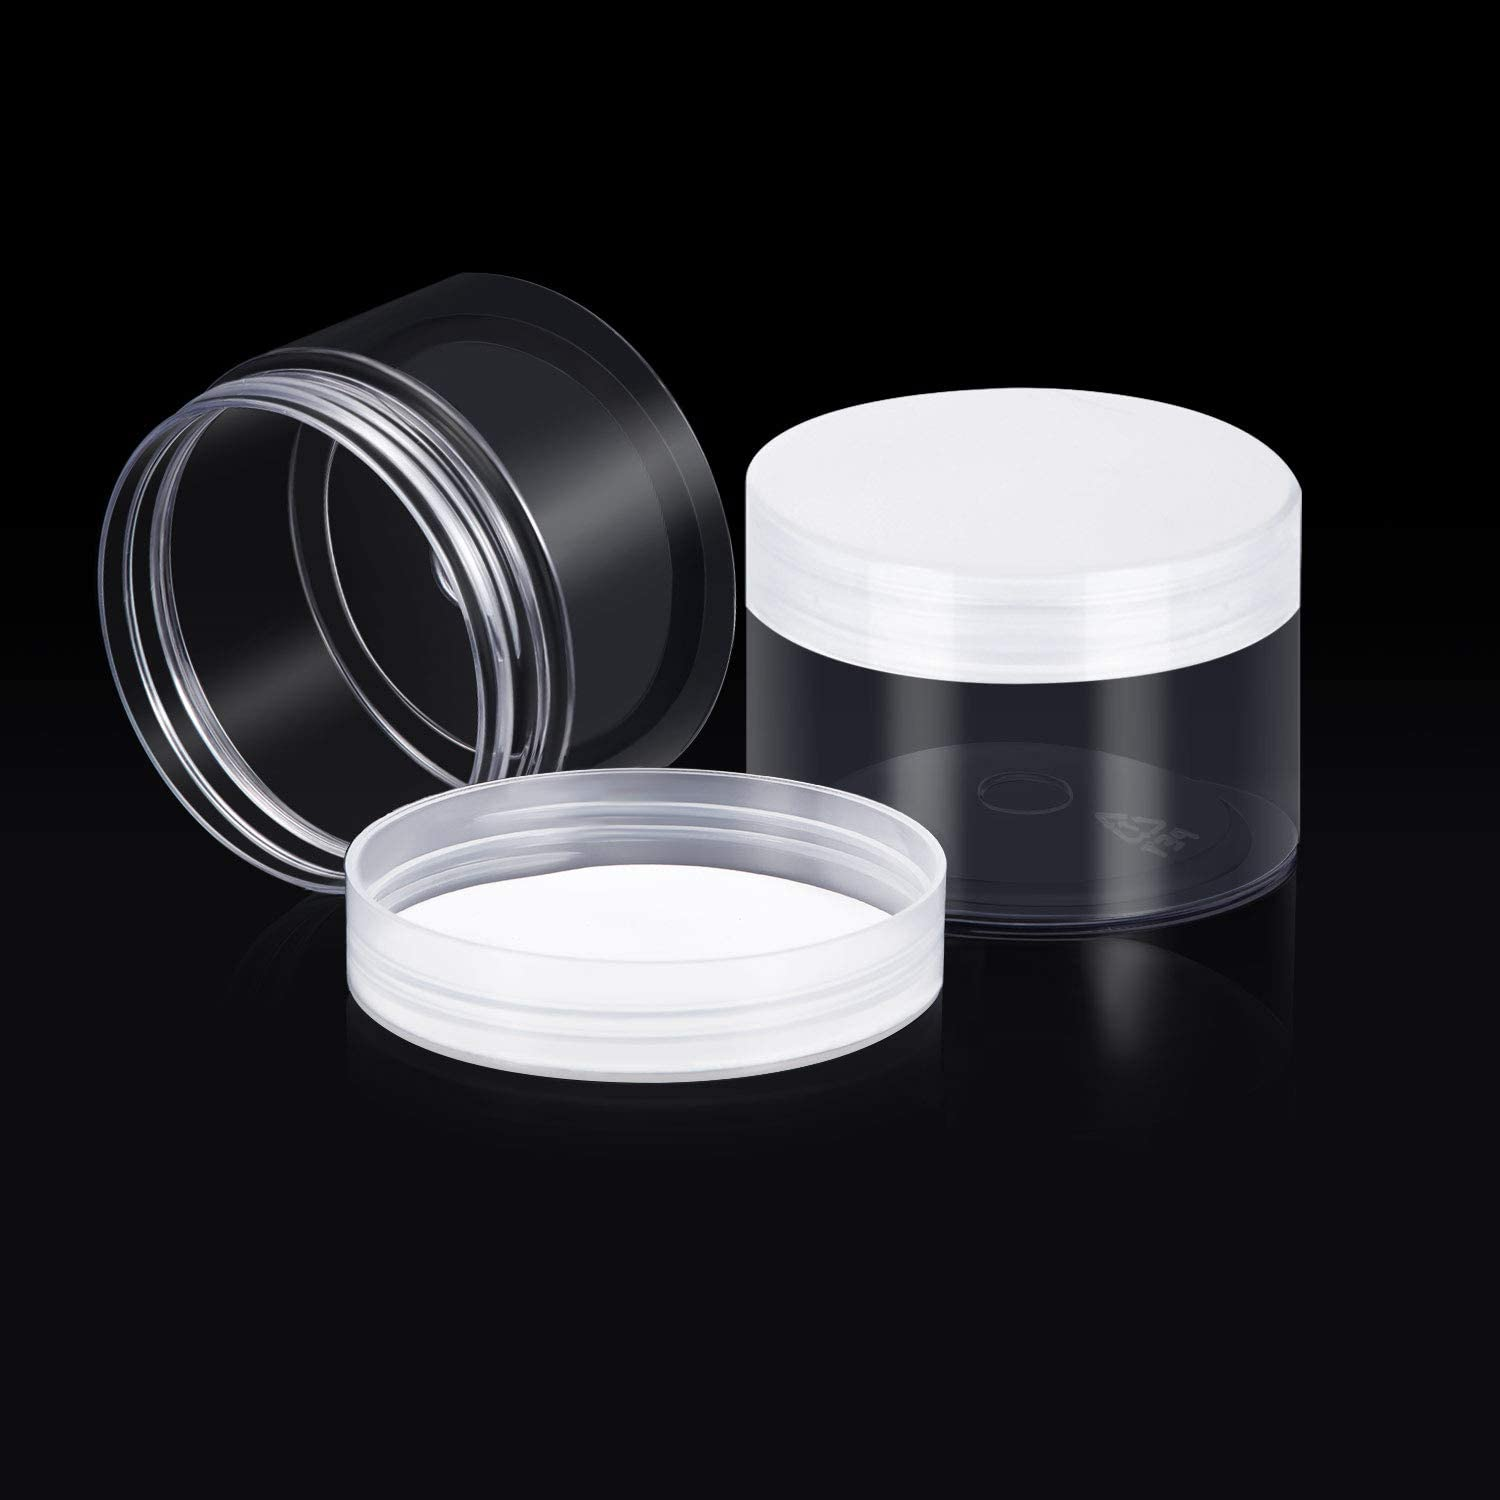 2 Ounce, Black Empty 12 Pack Clear Plastic Slime Storage Favor Jars Wide-Mouth Plastic Containers with Lids for Beauty Products DIY Slime Making or Others